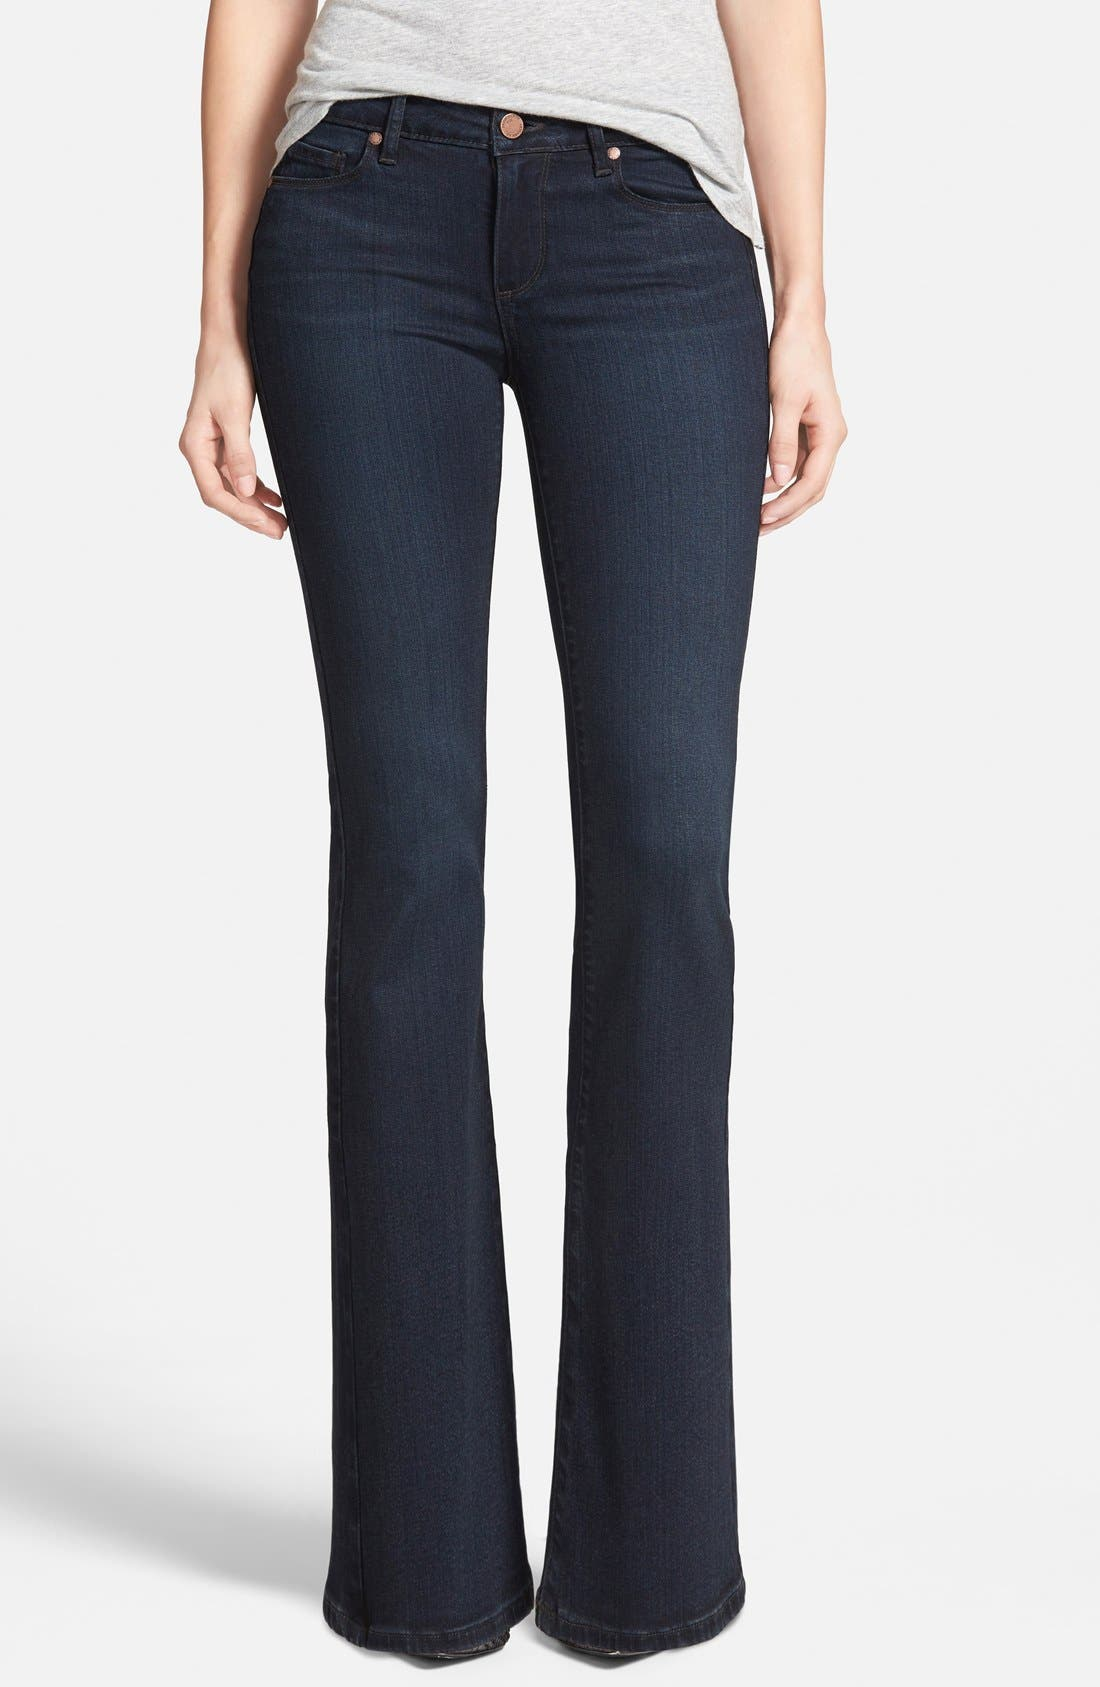 Alternate Image 1 Selected - Paige Denim 'Skyline' Bootcut Jeans (Keely) (Petite) (Nordstrom Exclusive)